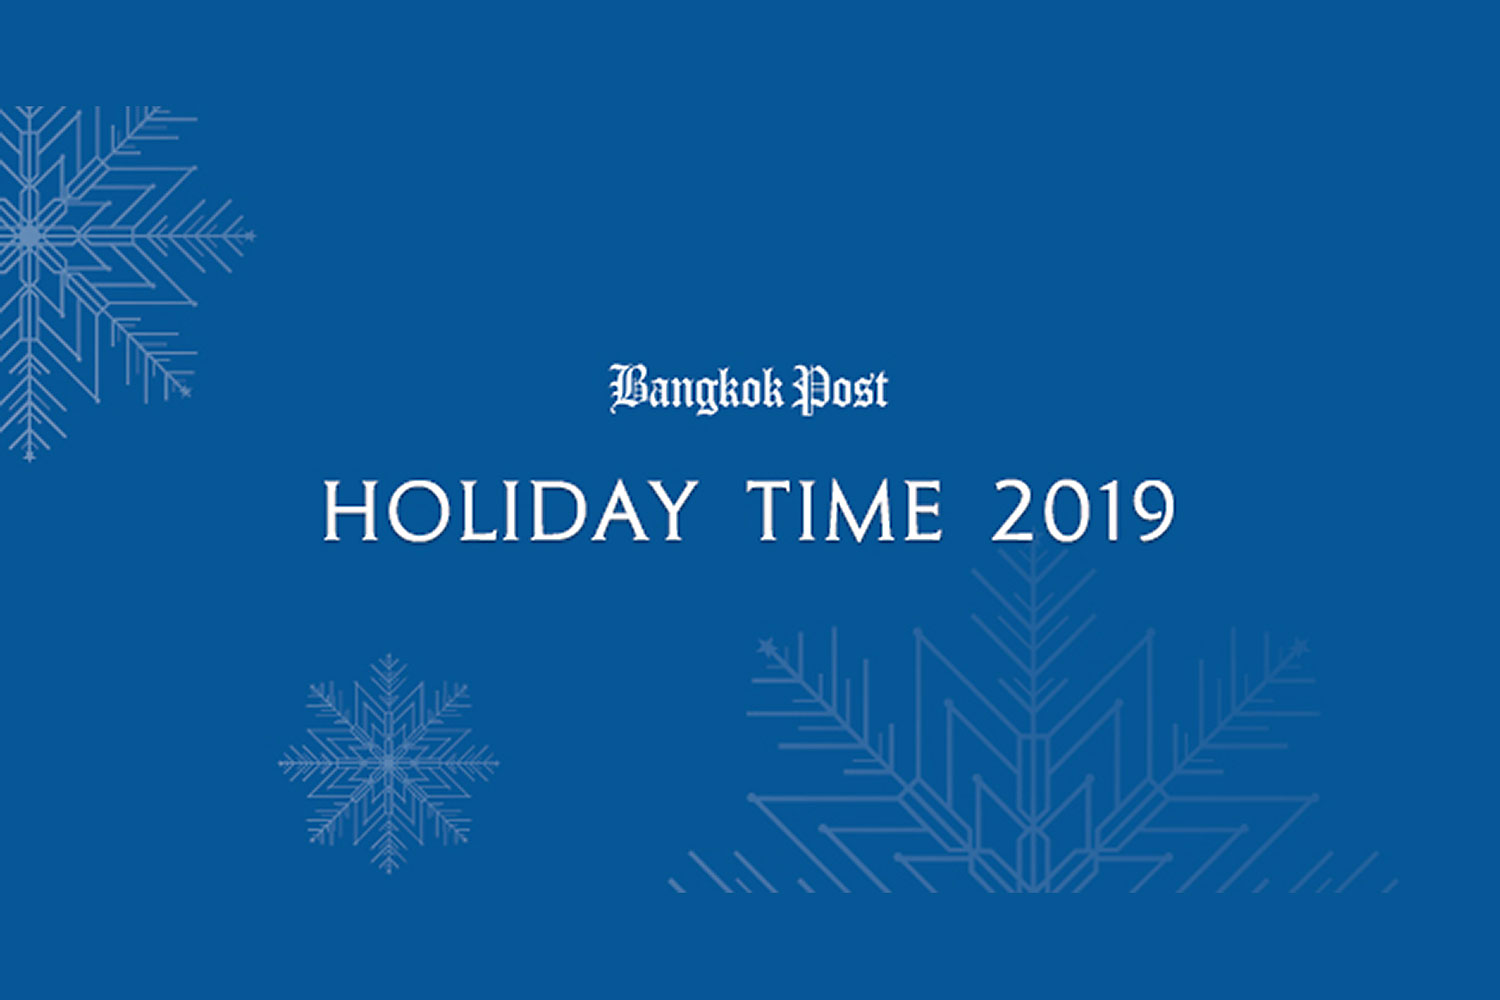 Holiday Time 2019